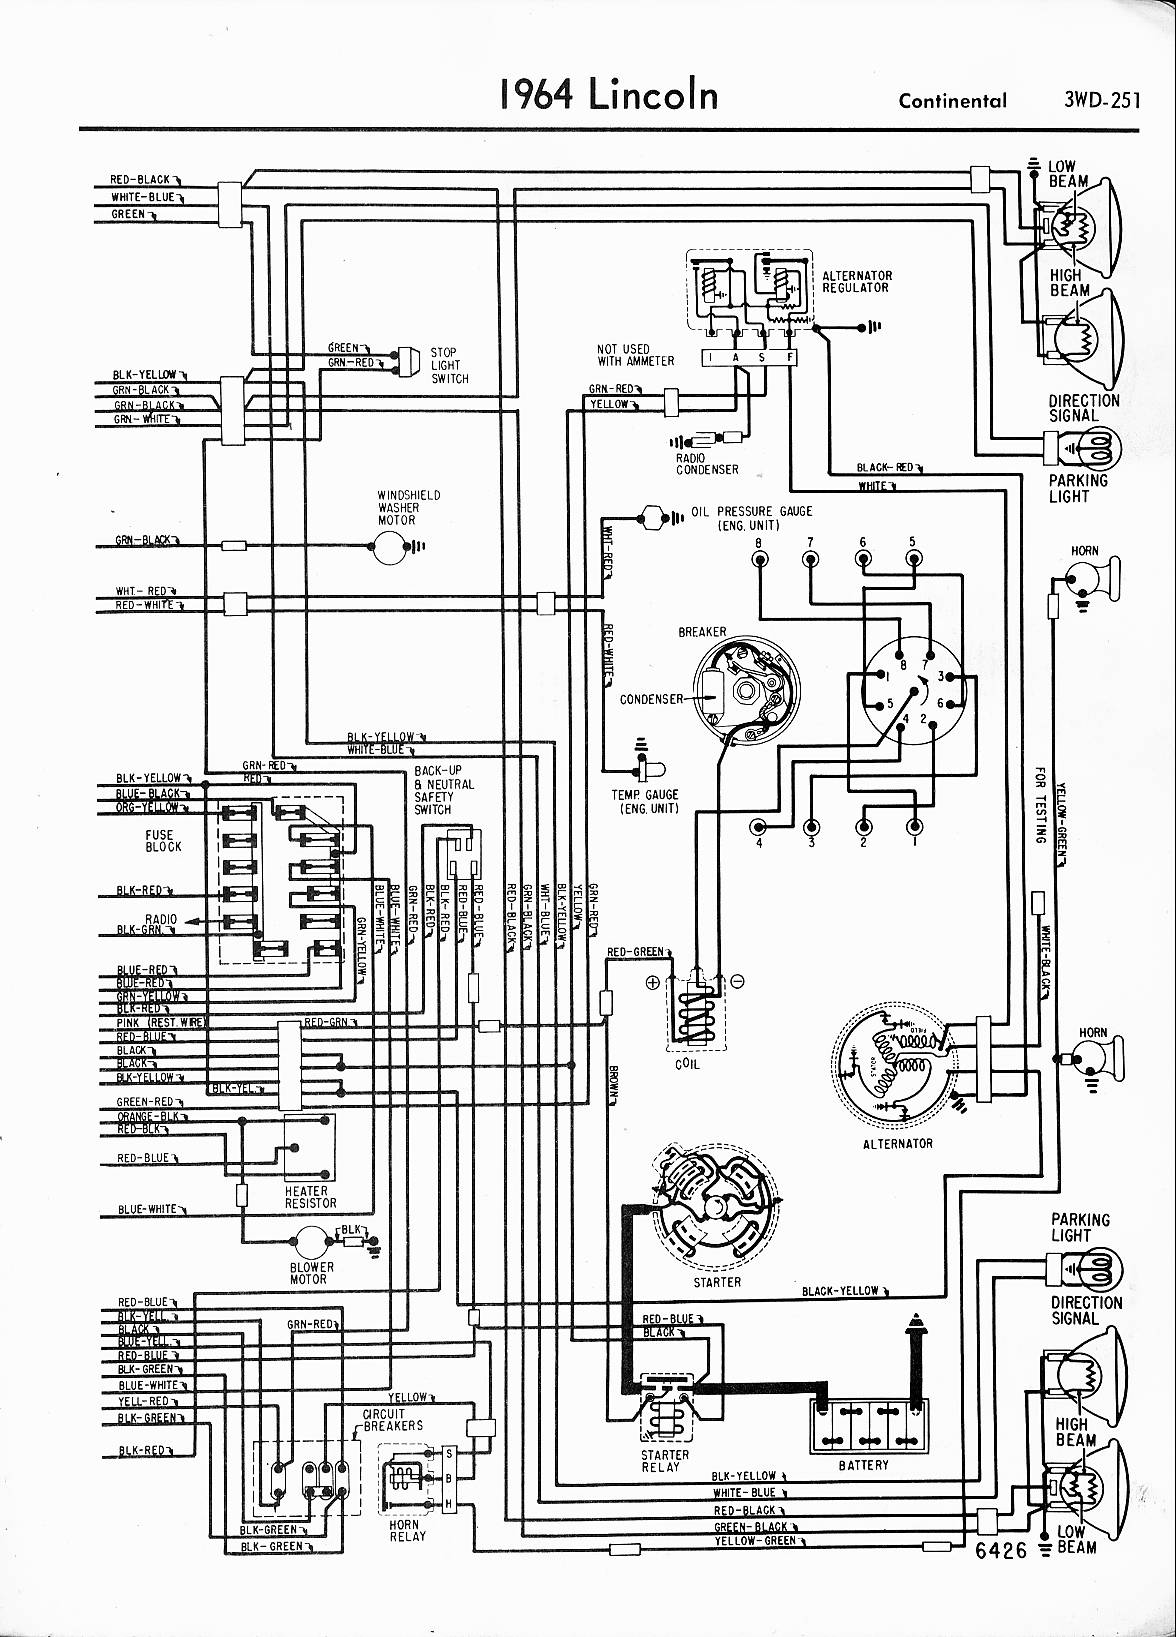 1972 lincoln wiring diagrams lincoln wiring diagrams: 1957 - 1965